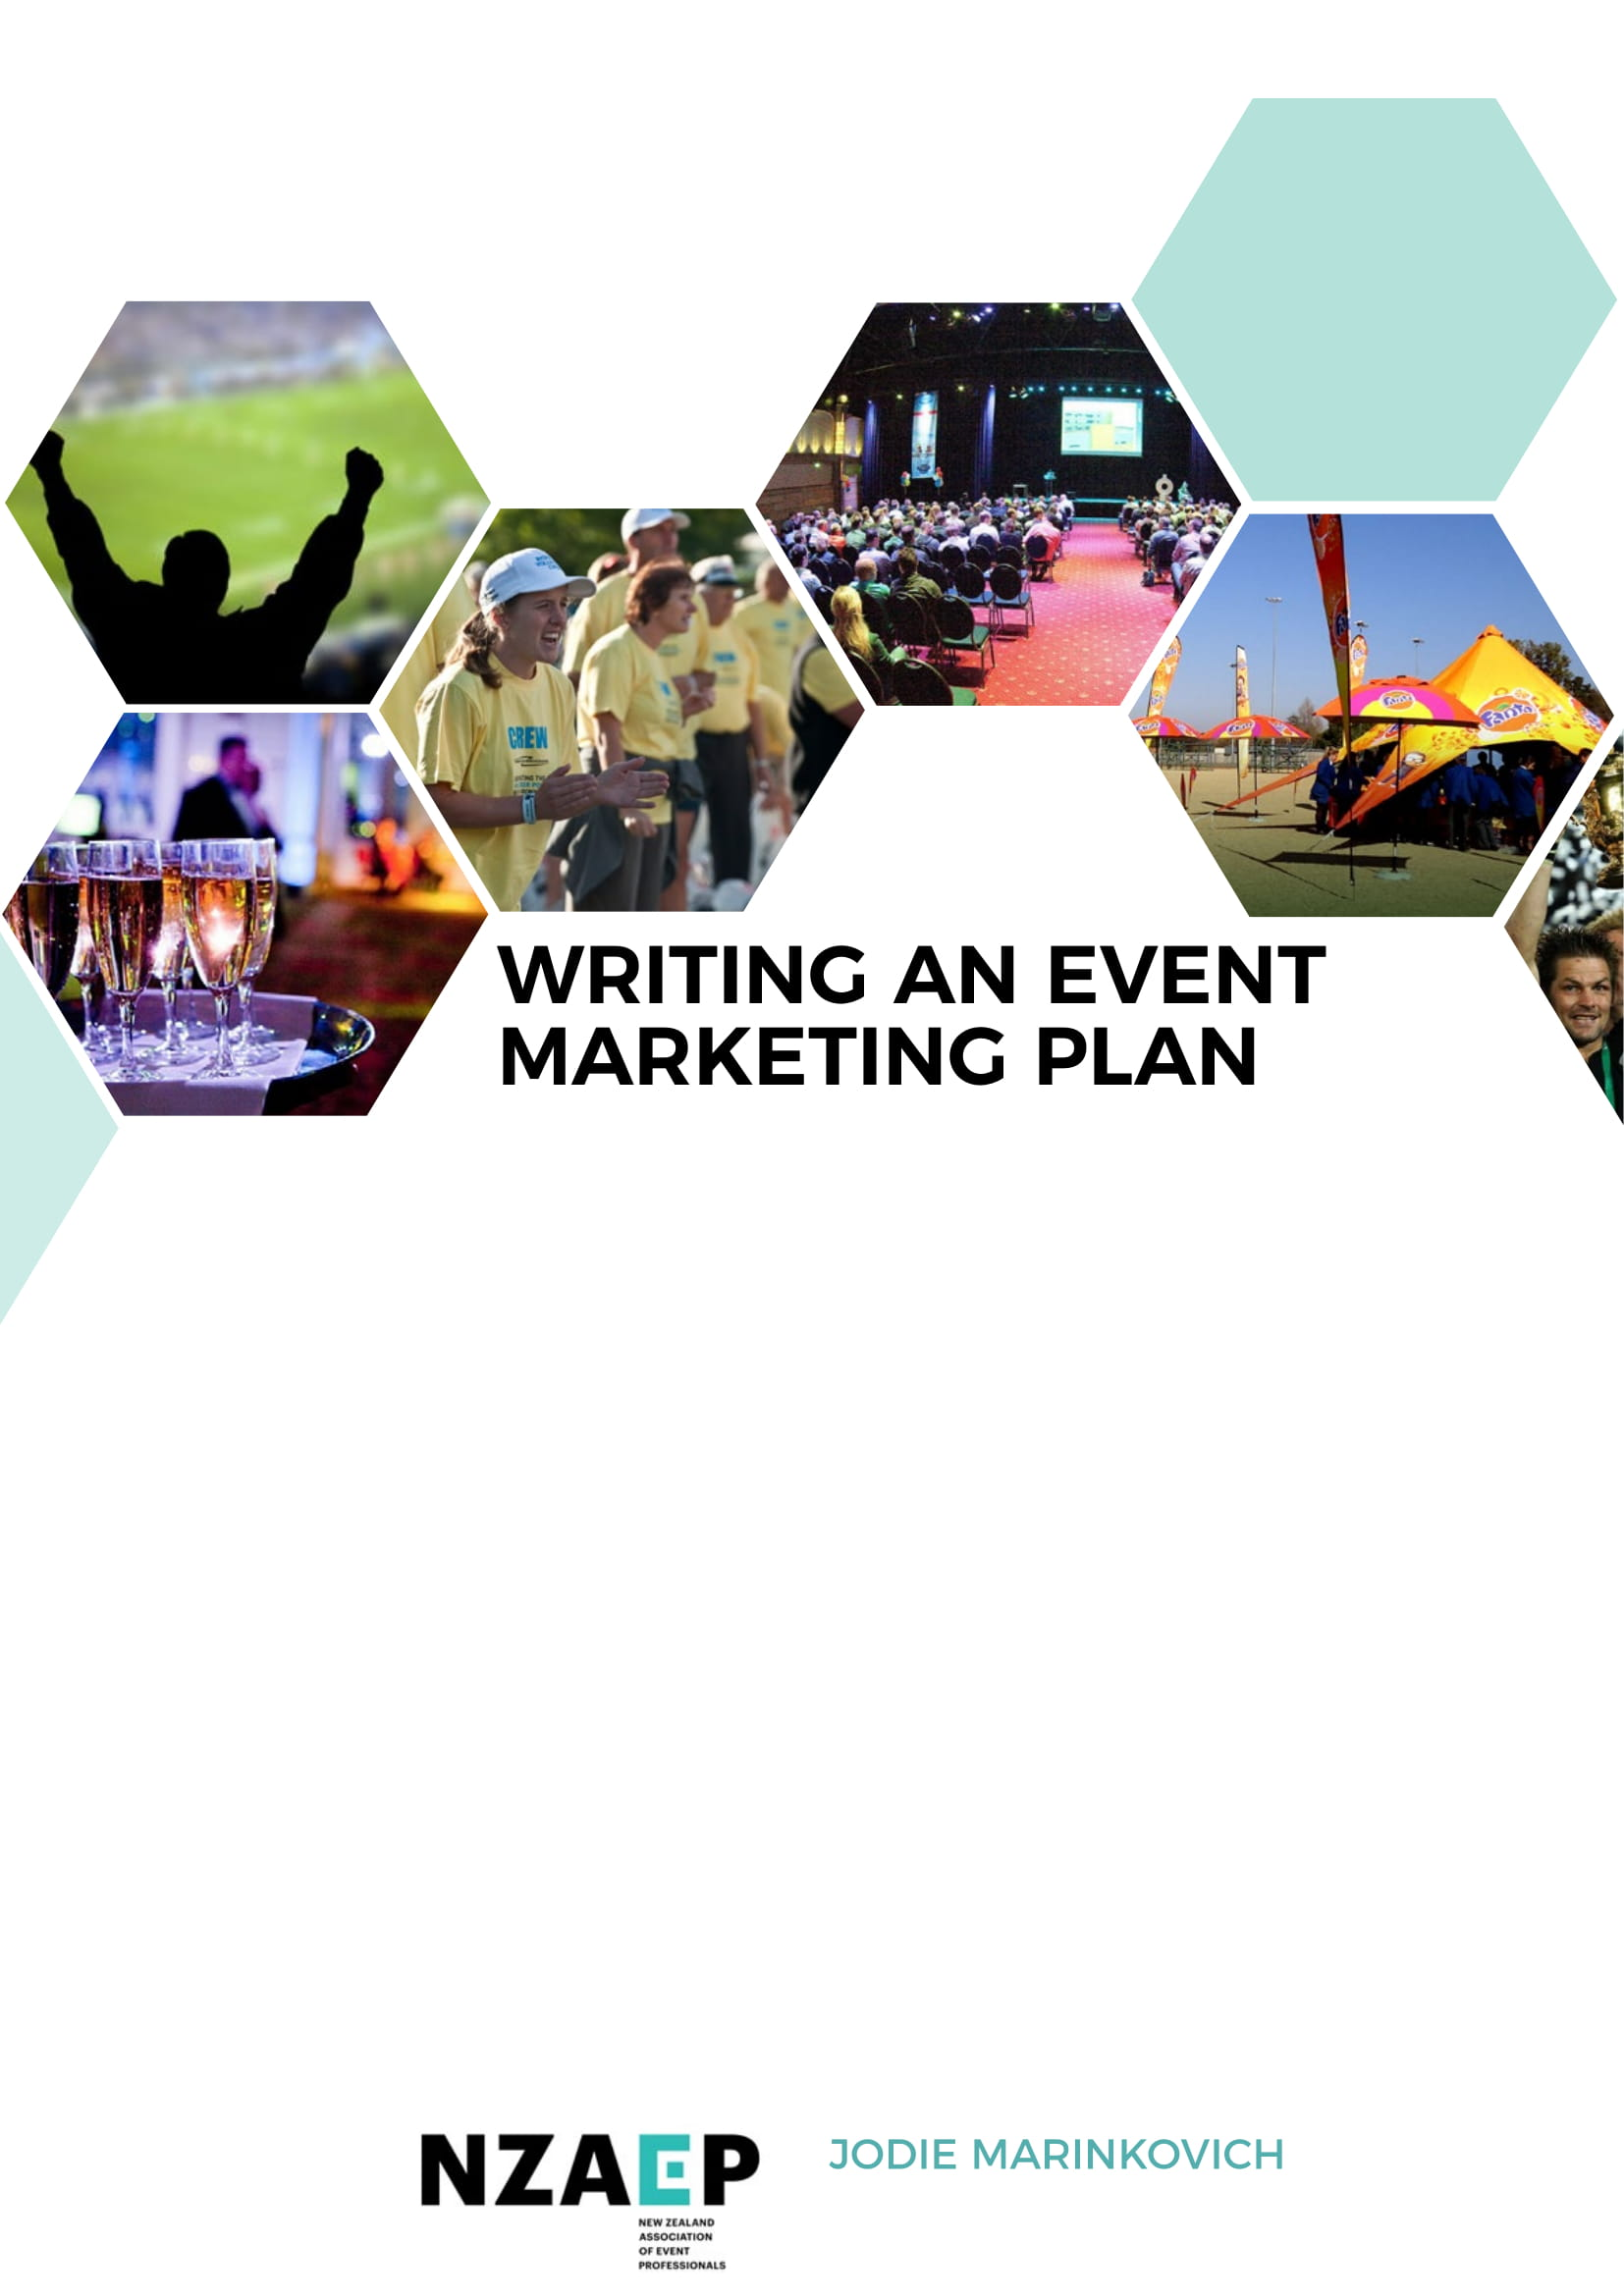 event project marketing plan example 01